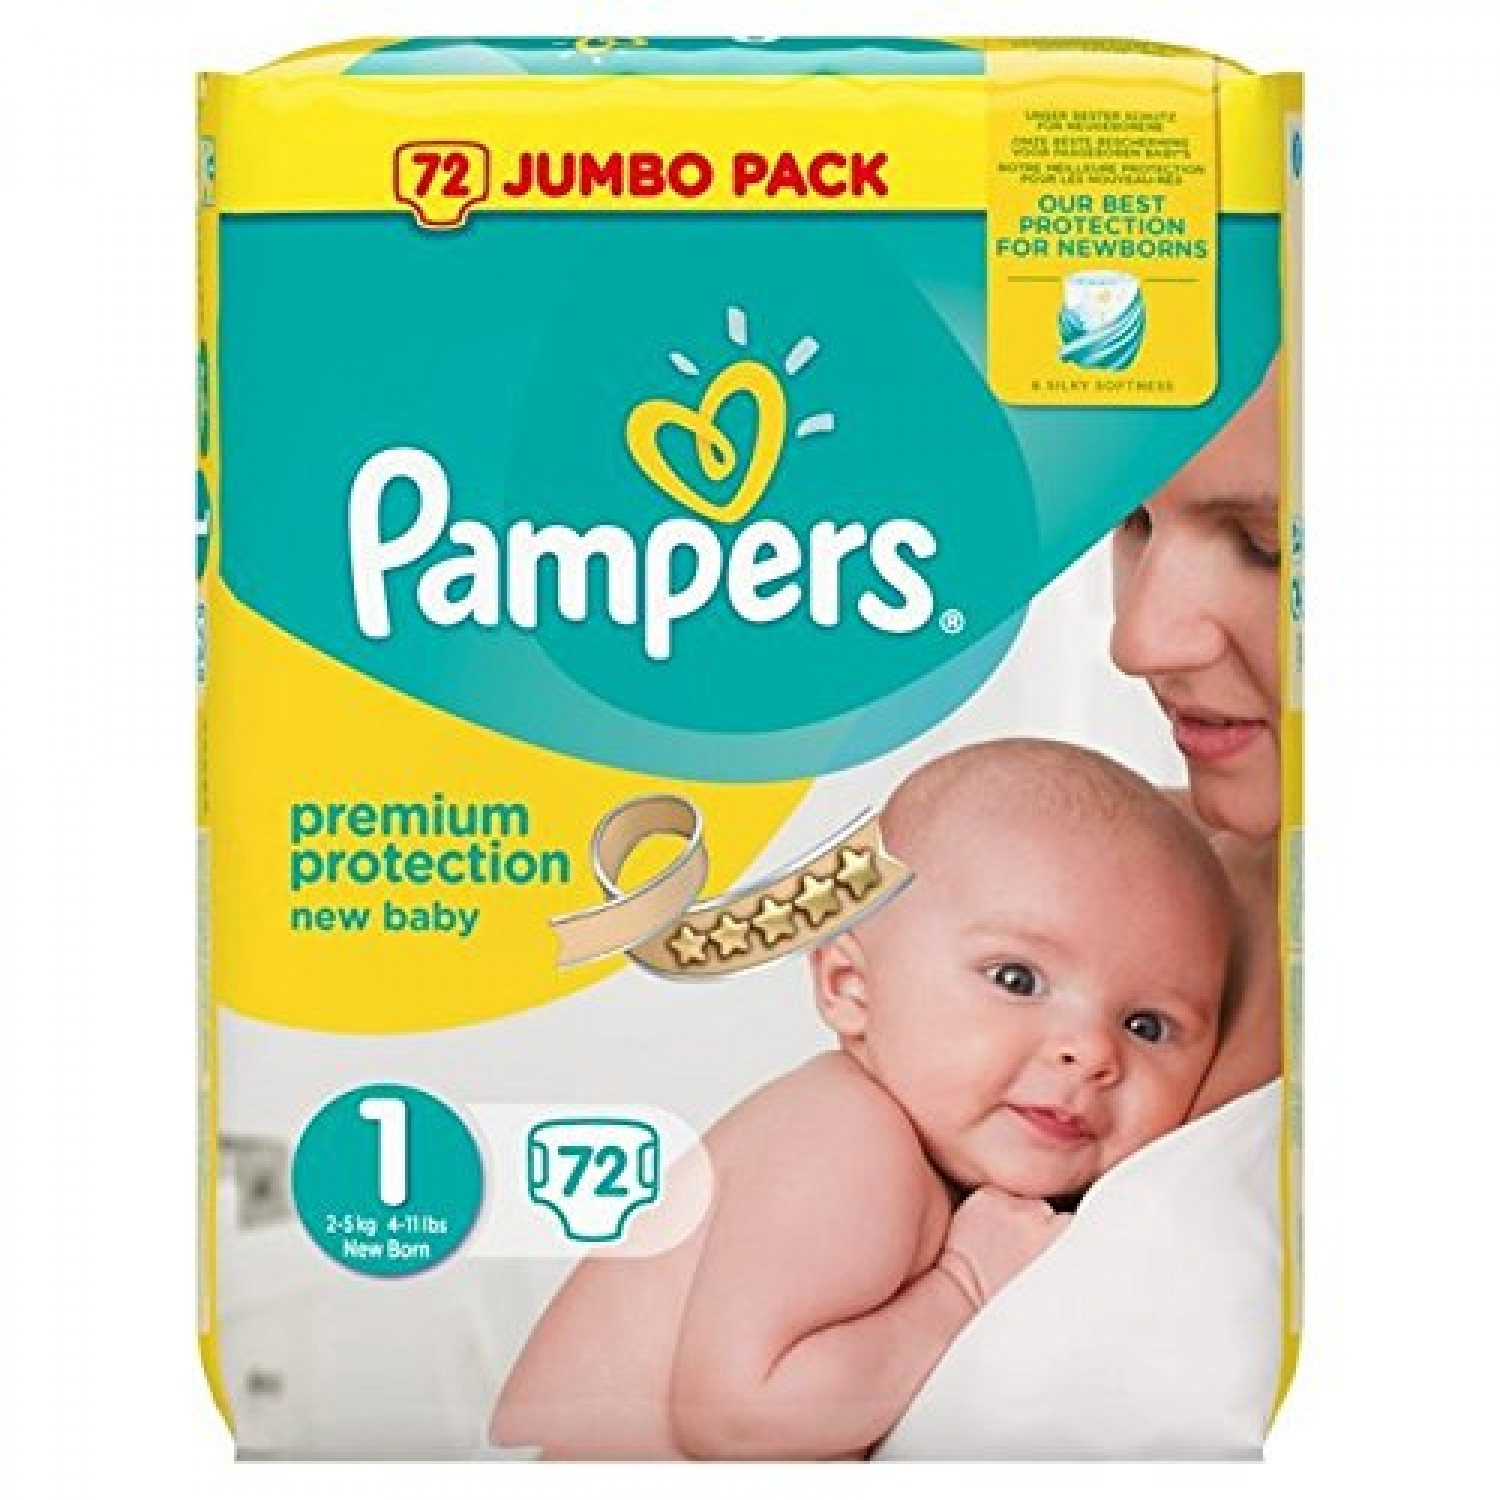 pampers razmer 1